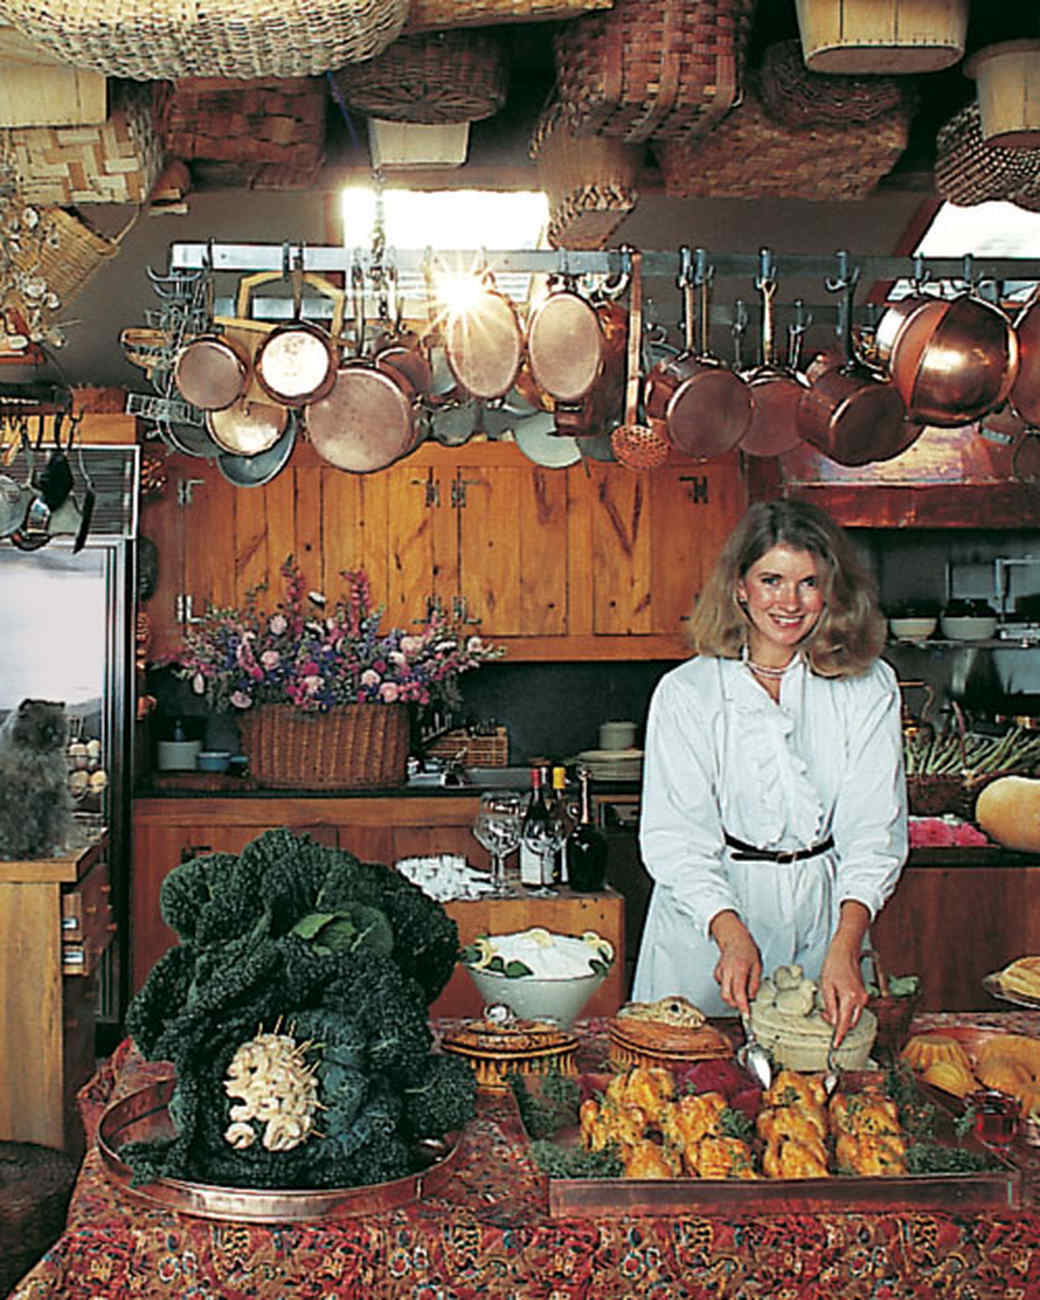 la909_1007_kitchen1.jpg